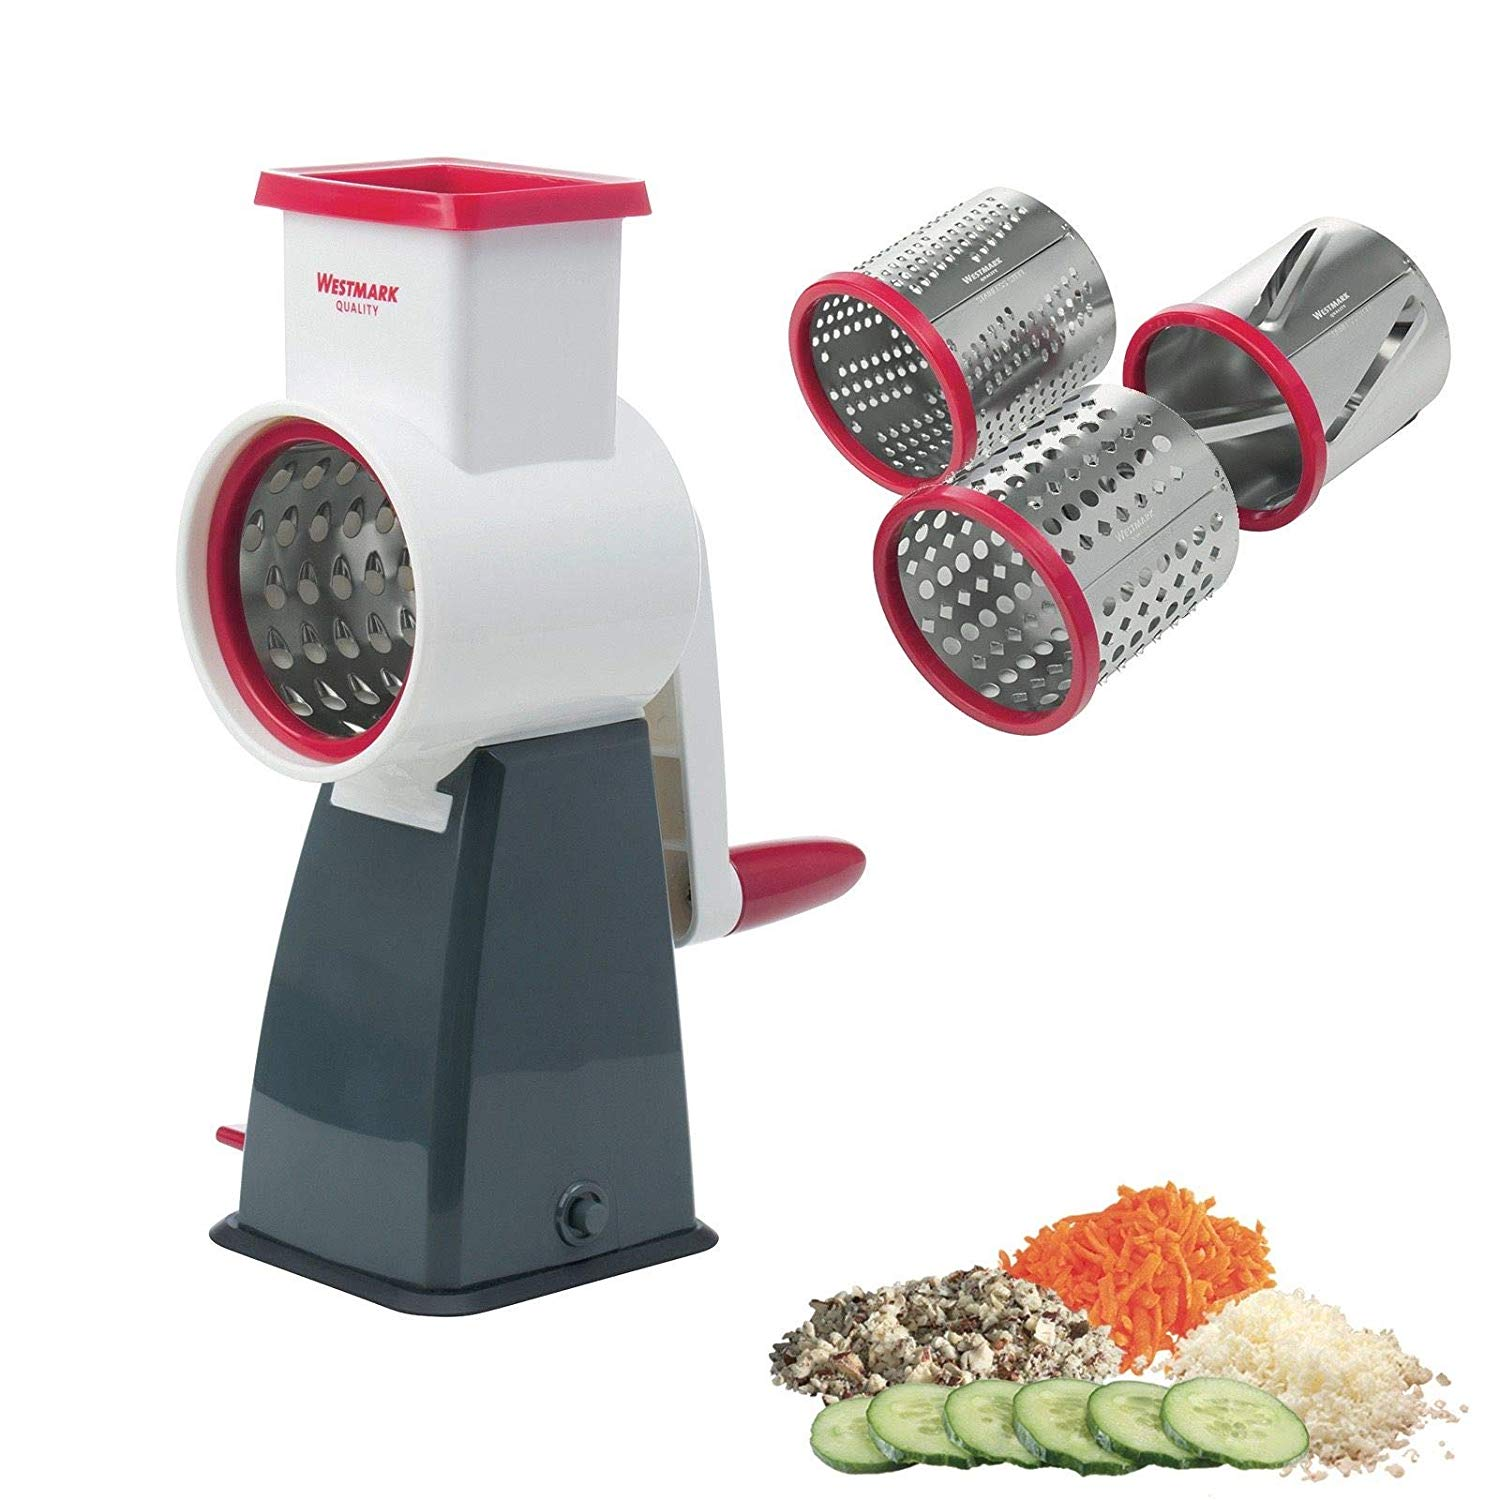 Westmark multipurpose stainless steel rotary cheese grater